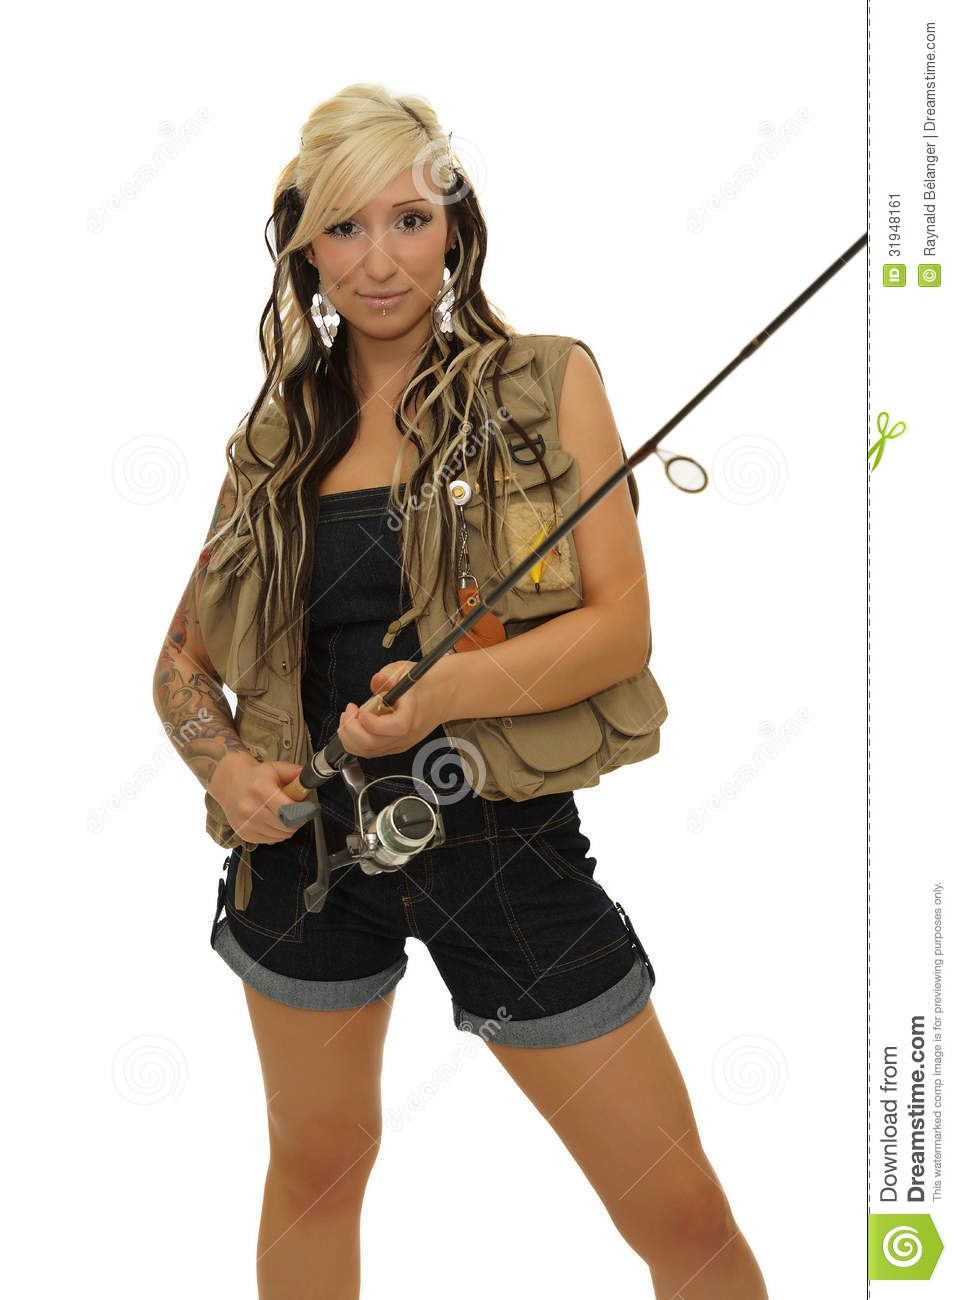 Girl with fishing pole stock image image 31948161 for Little girl fishing pole